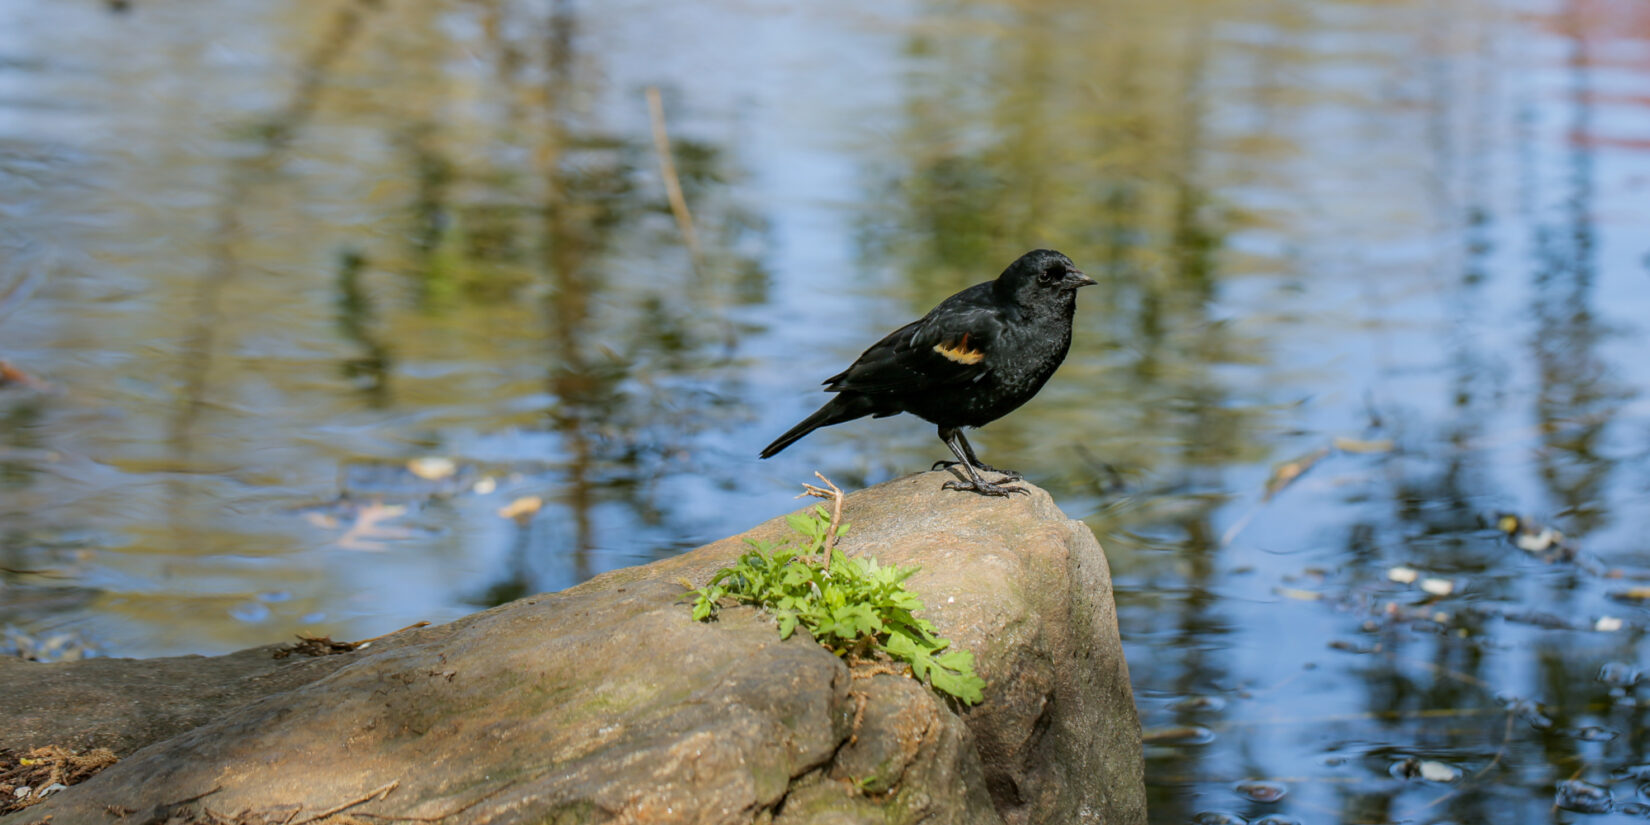 A male red-winged blackbird perches on a rock overlooking the Pool.